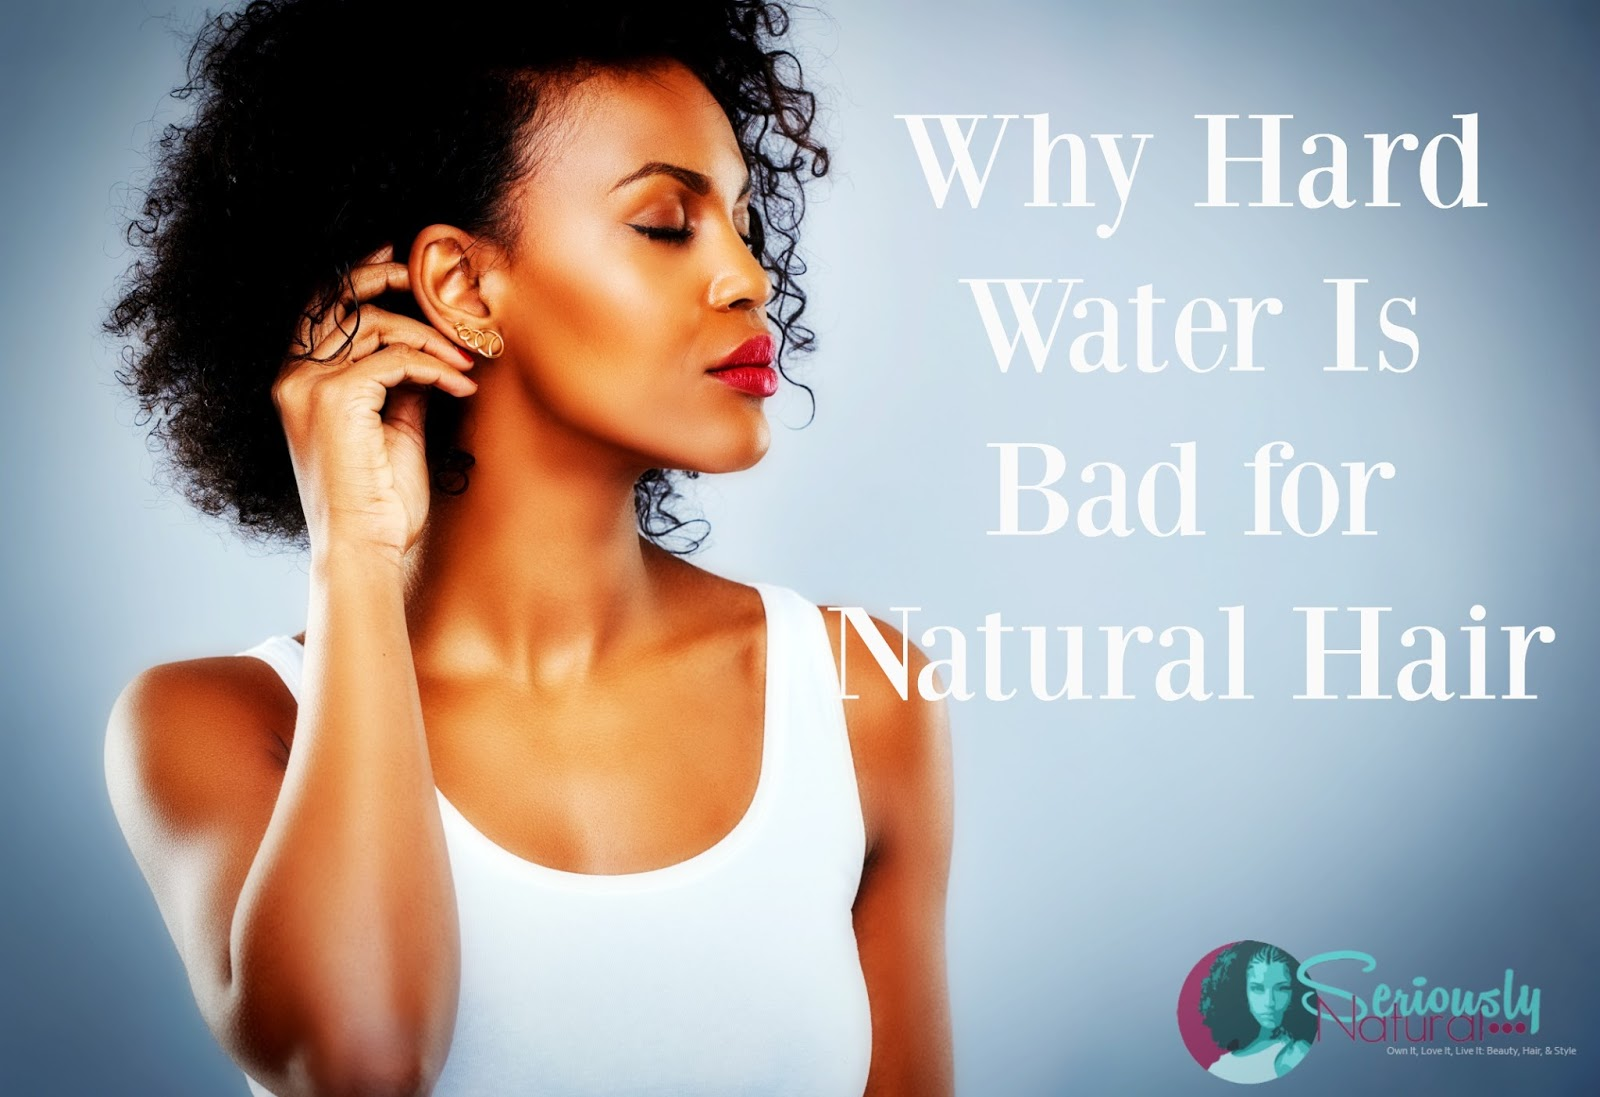 Why Hard Water Is Bad for Natural Hair